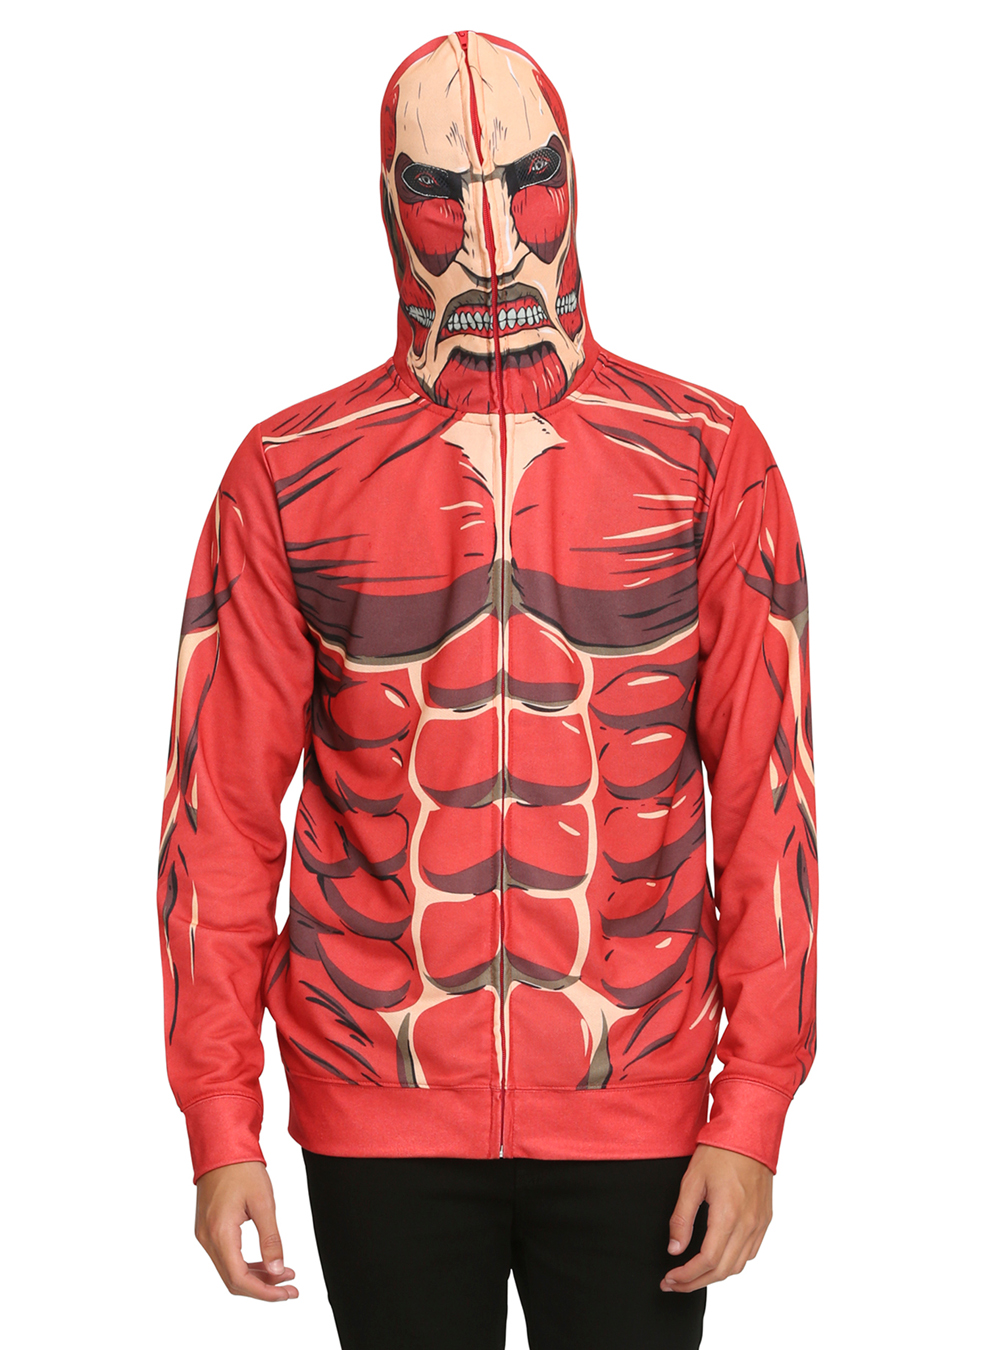 Transform into the Colossal Titan with This New Attack on Titan Hoodie 2